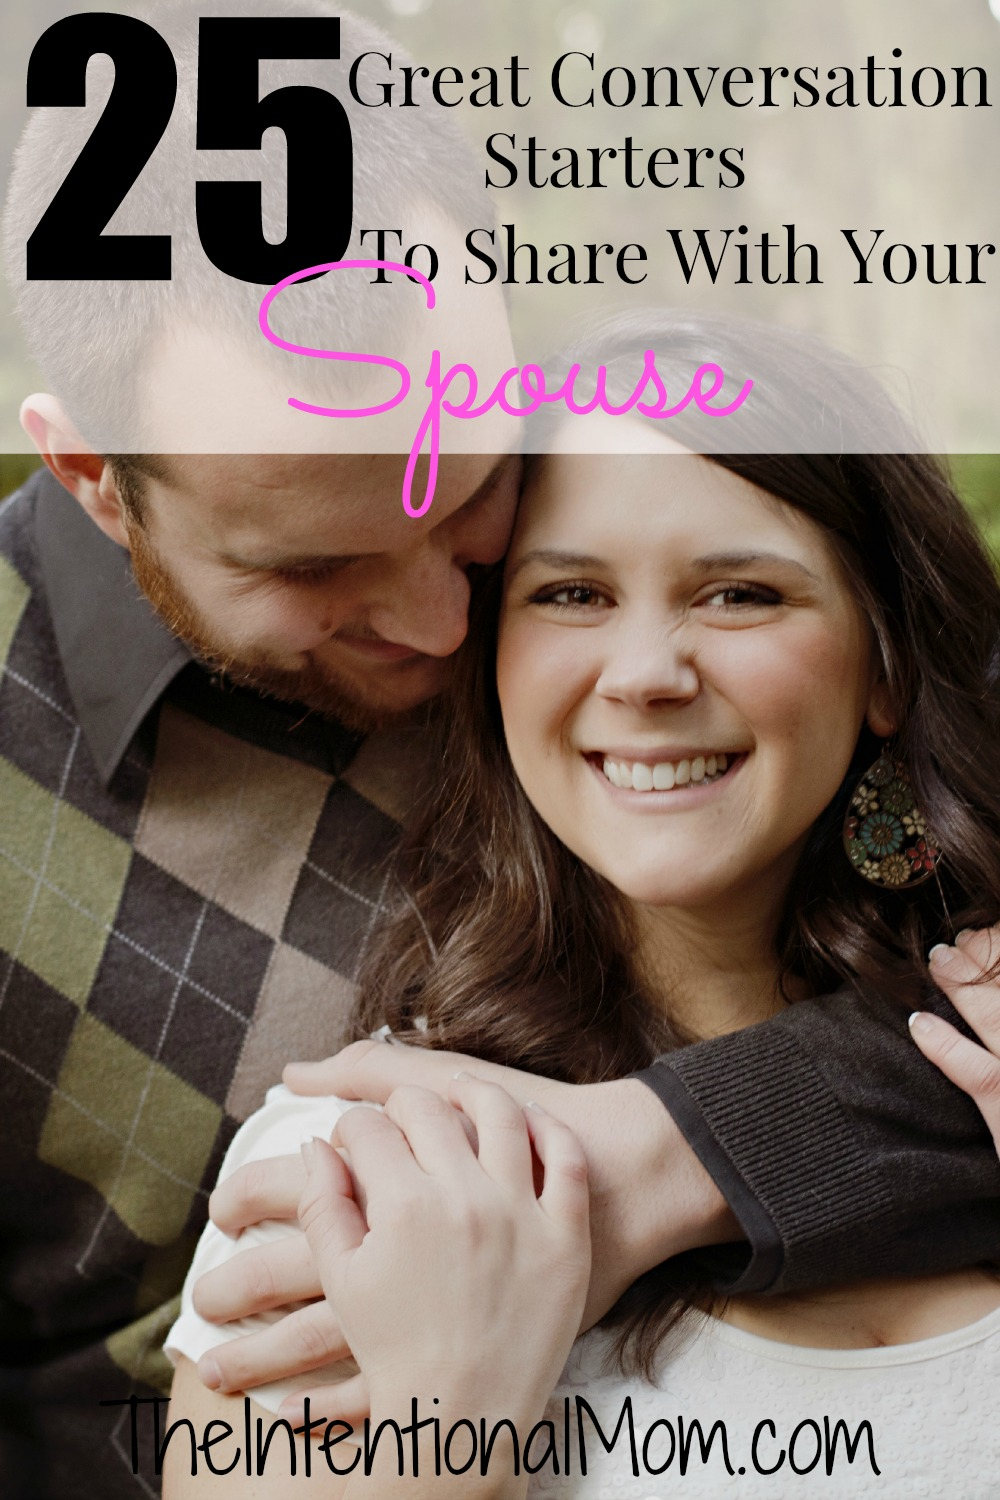 Memorable dates in the life of spouses